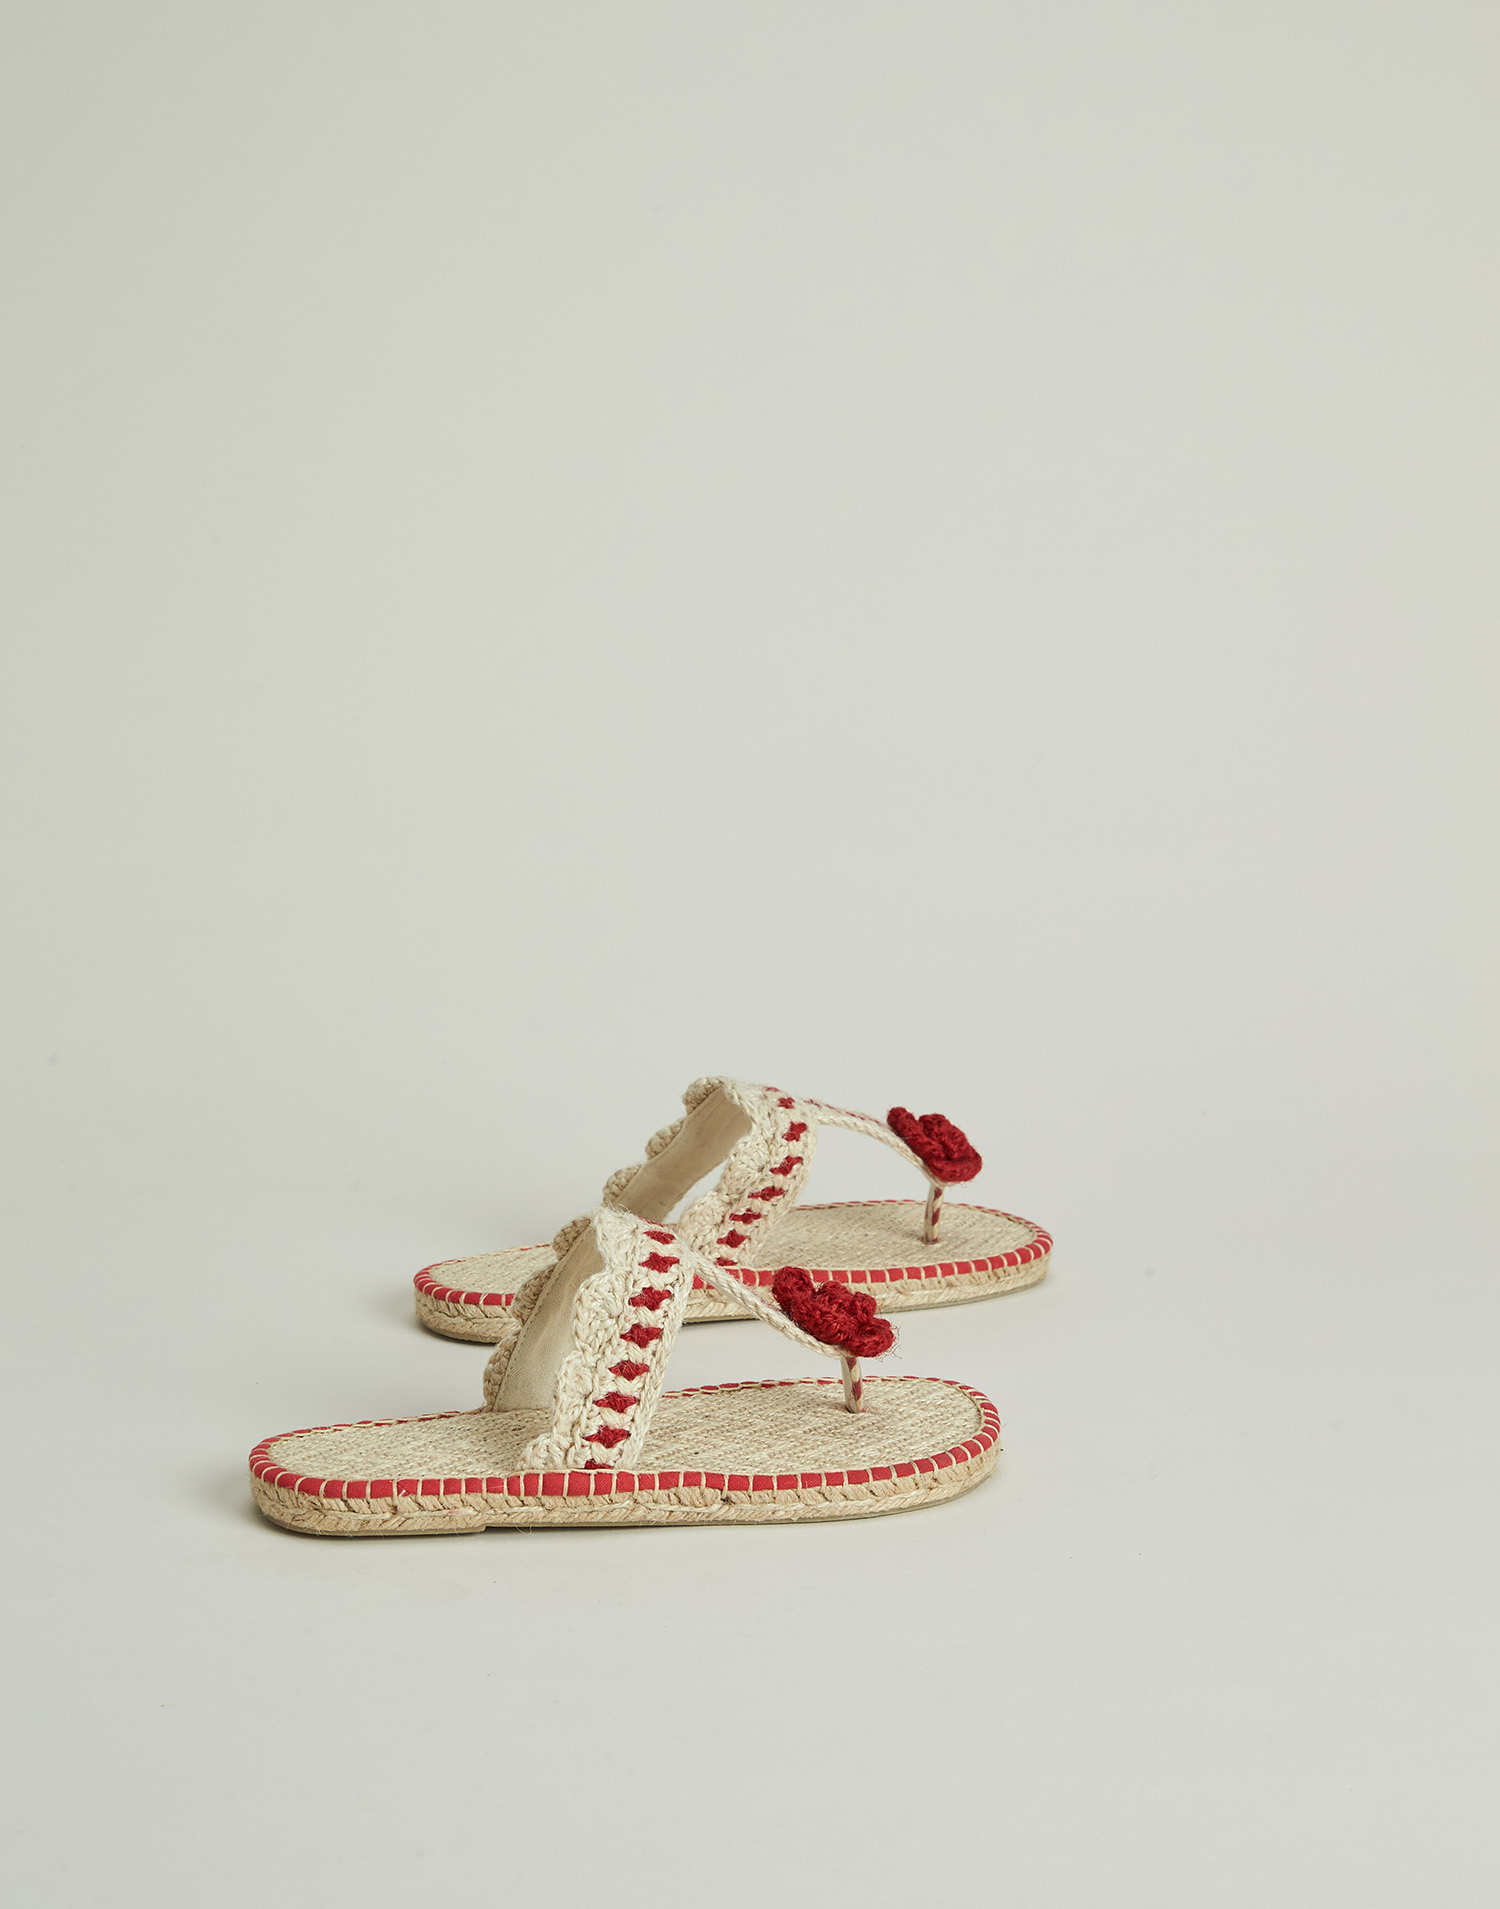 Flower crocheted hemp sandal